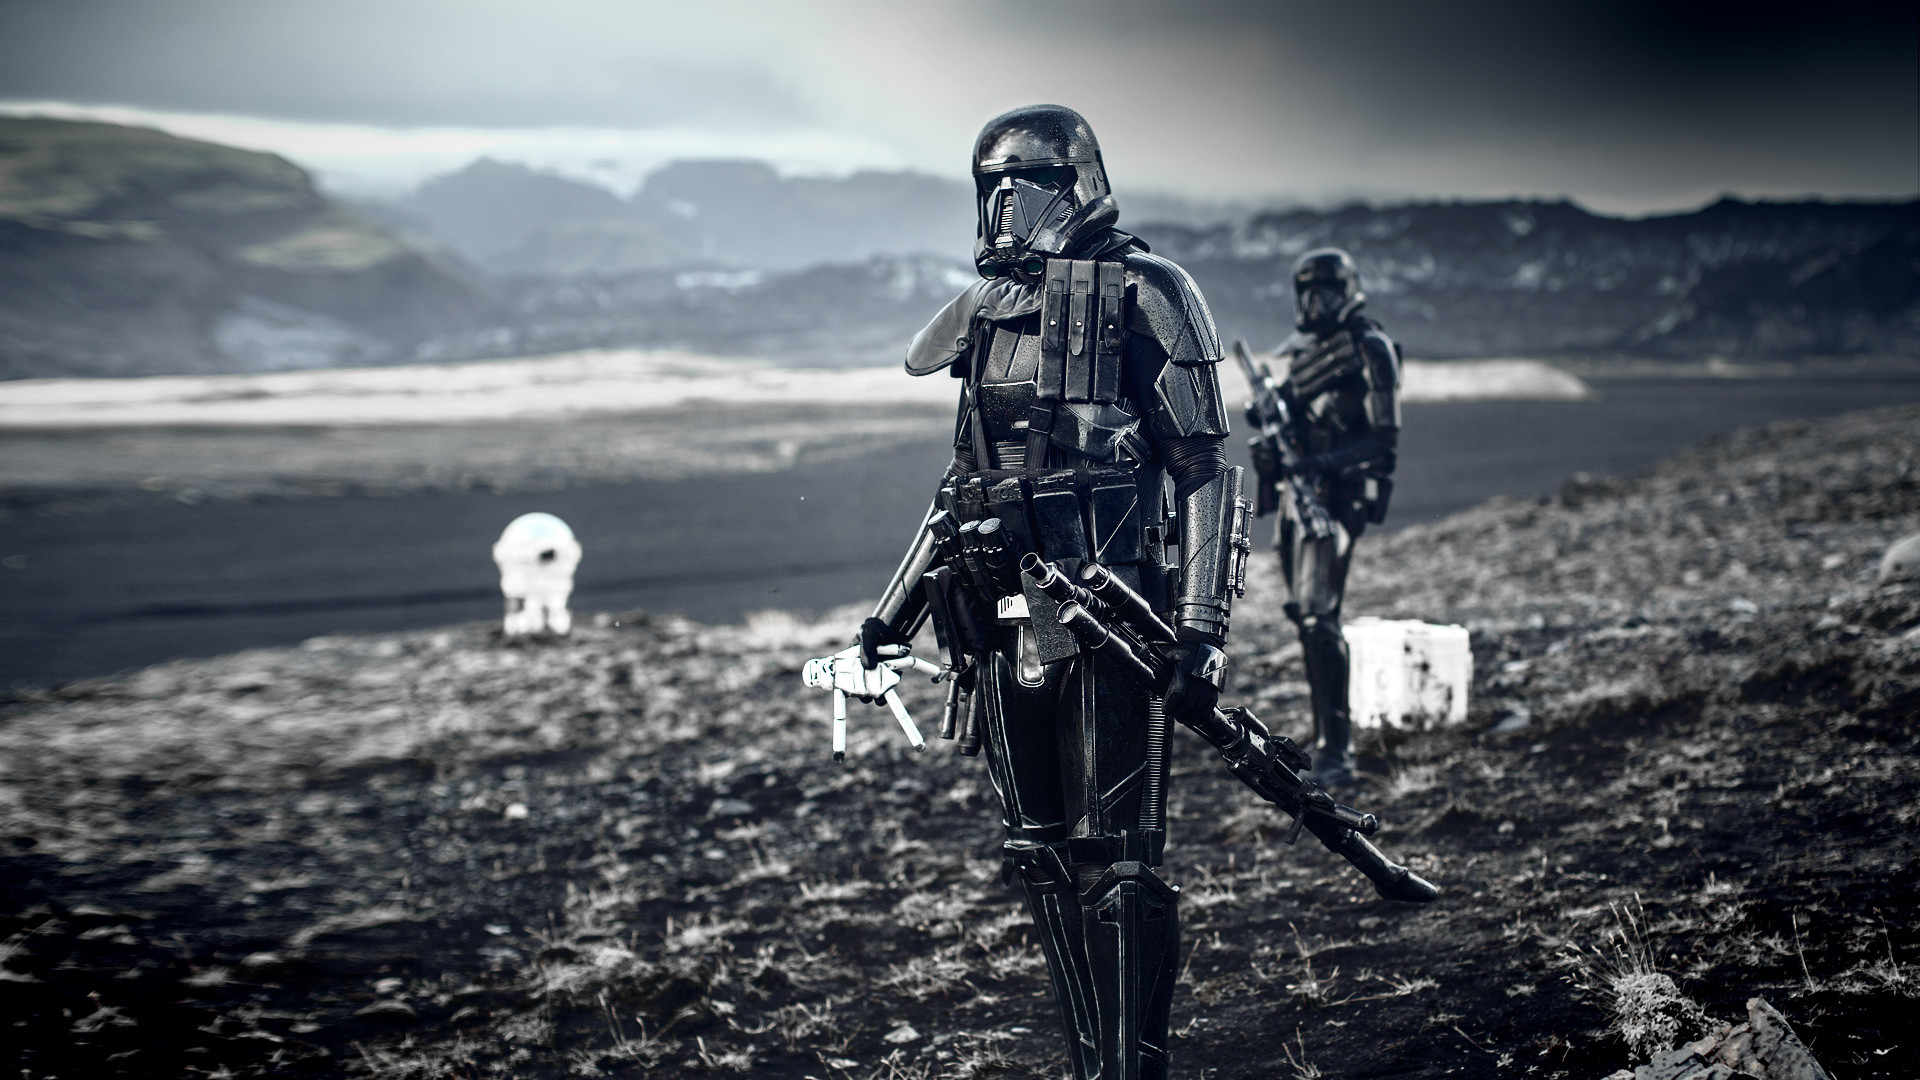 1920x1080 Star Wars: Rogue One - Dual Monitor Wallpaper | Top reddit wallpapers |  Pinterest | Rogues, Monitor and Wallpaper